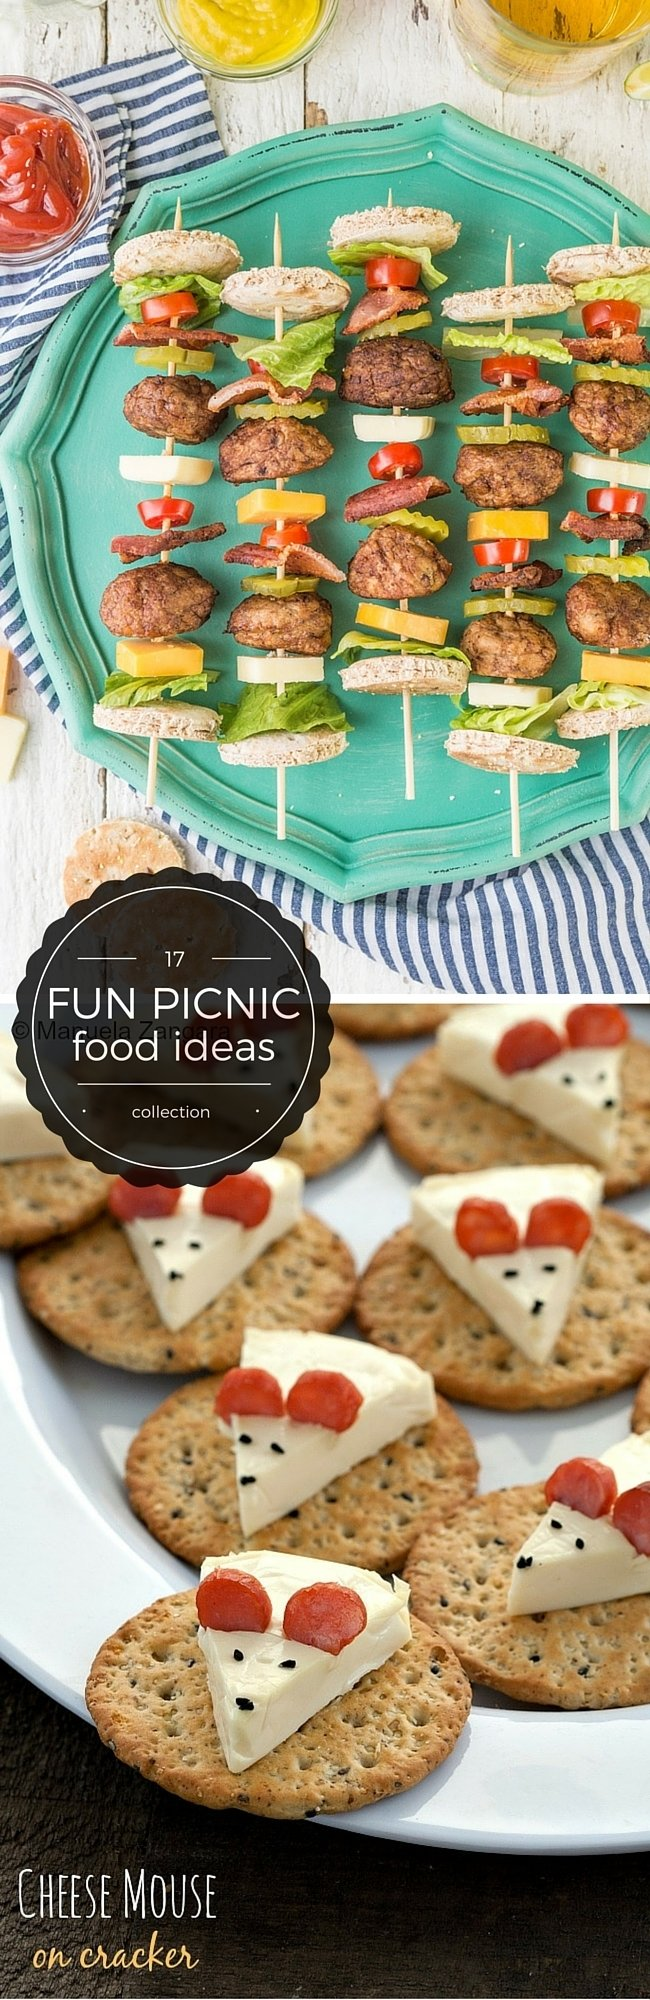 17 fun, kid-friendly picnic food ideas